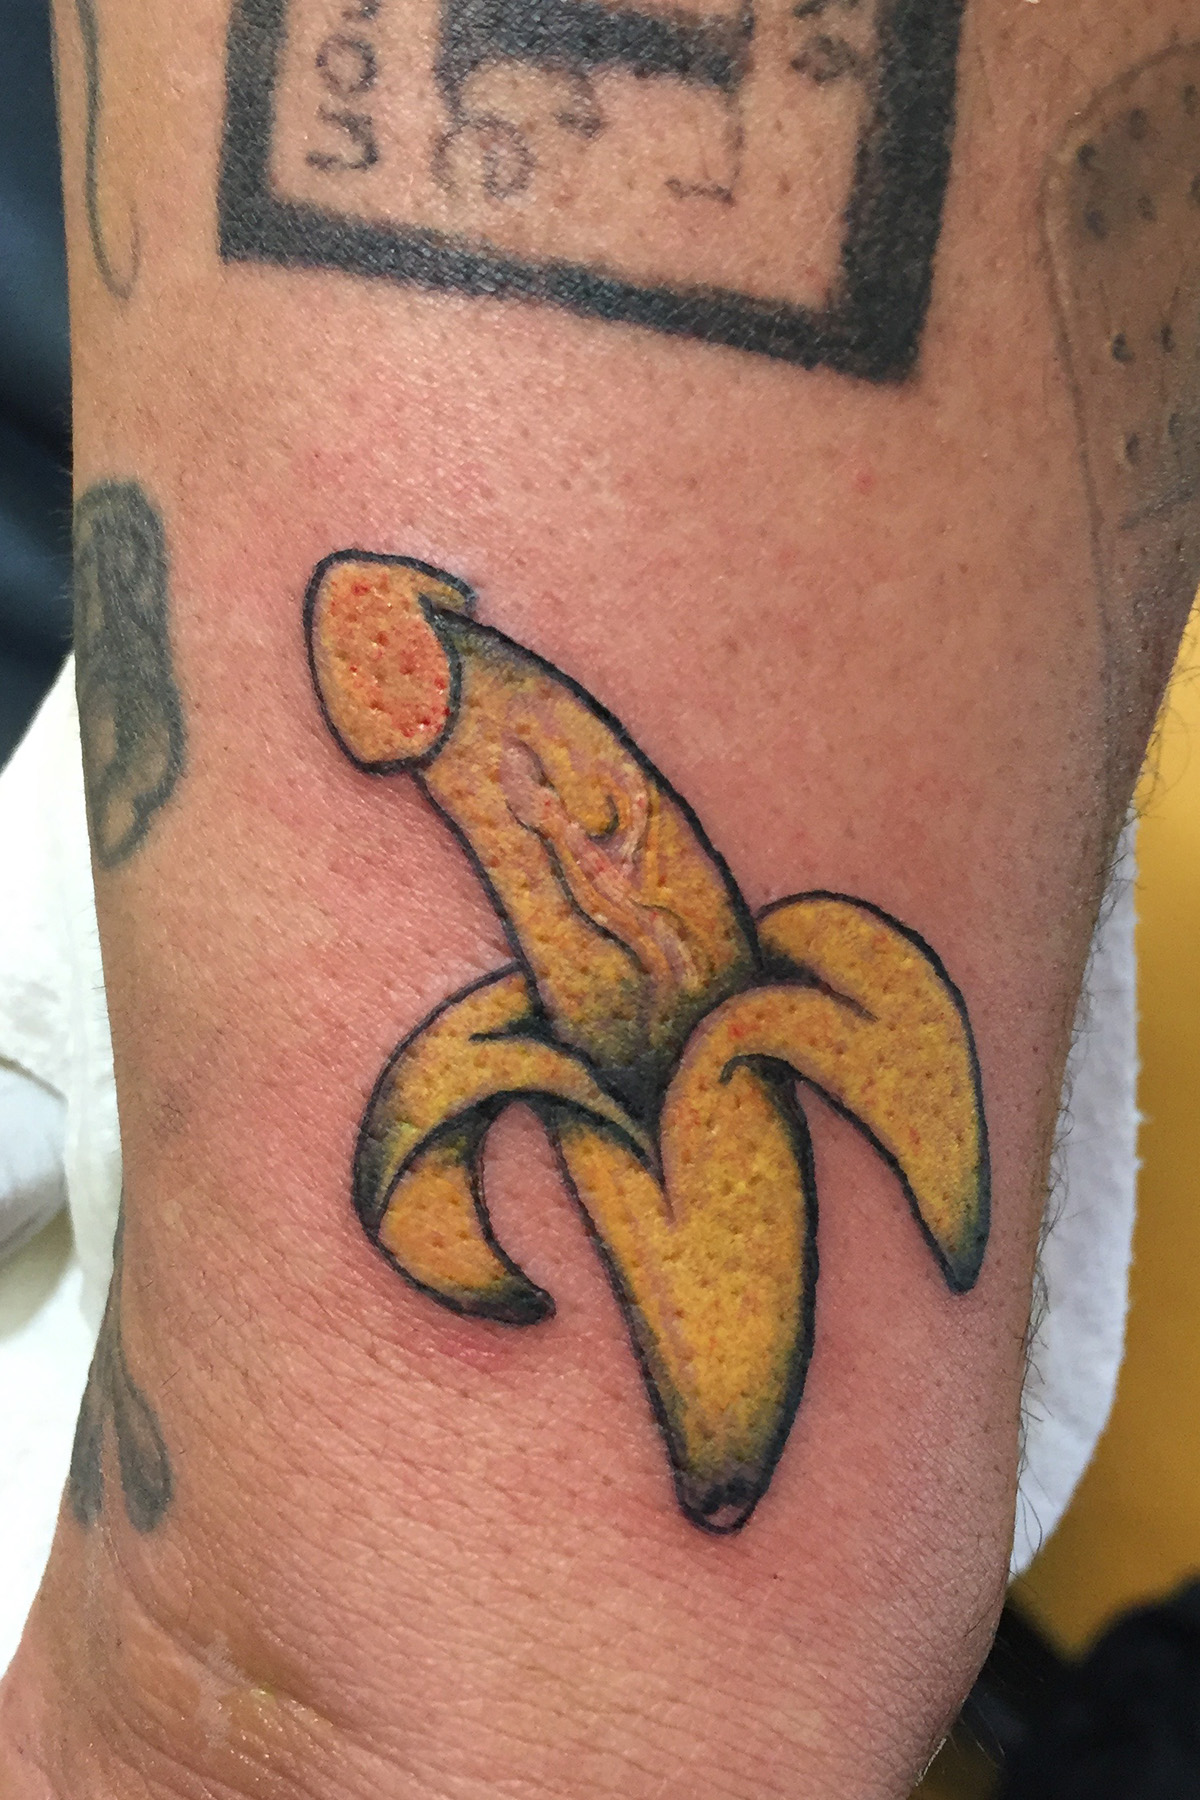 Yellow banana penis tattoo on the lower arm, half sleeve.Gold Stripe Tattoo located in the heart of North Park, San Diego, California. If you like what you see please click on the 'contact us' link below for your consultation.